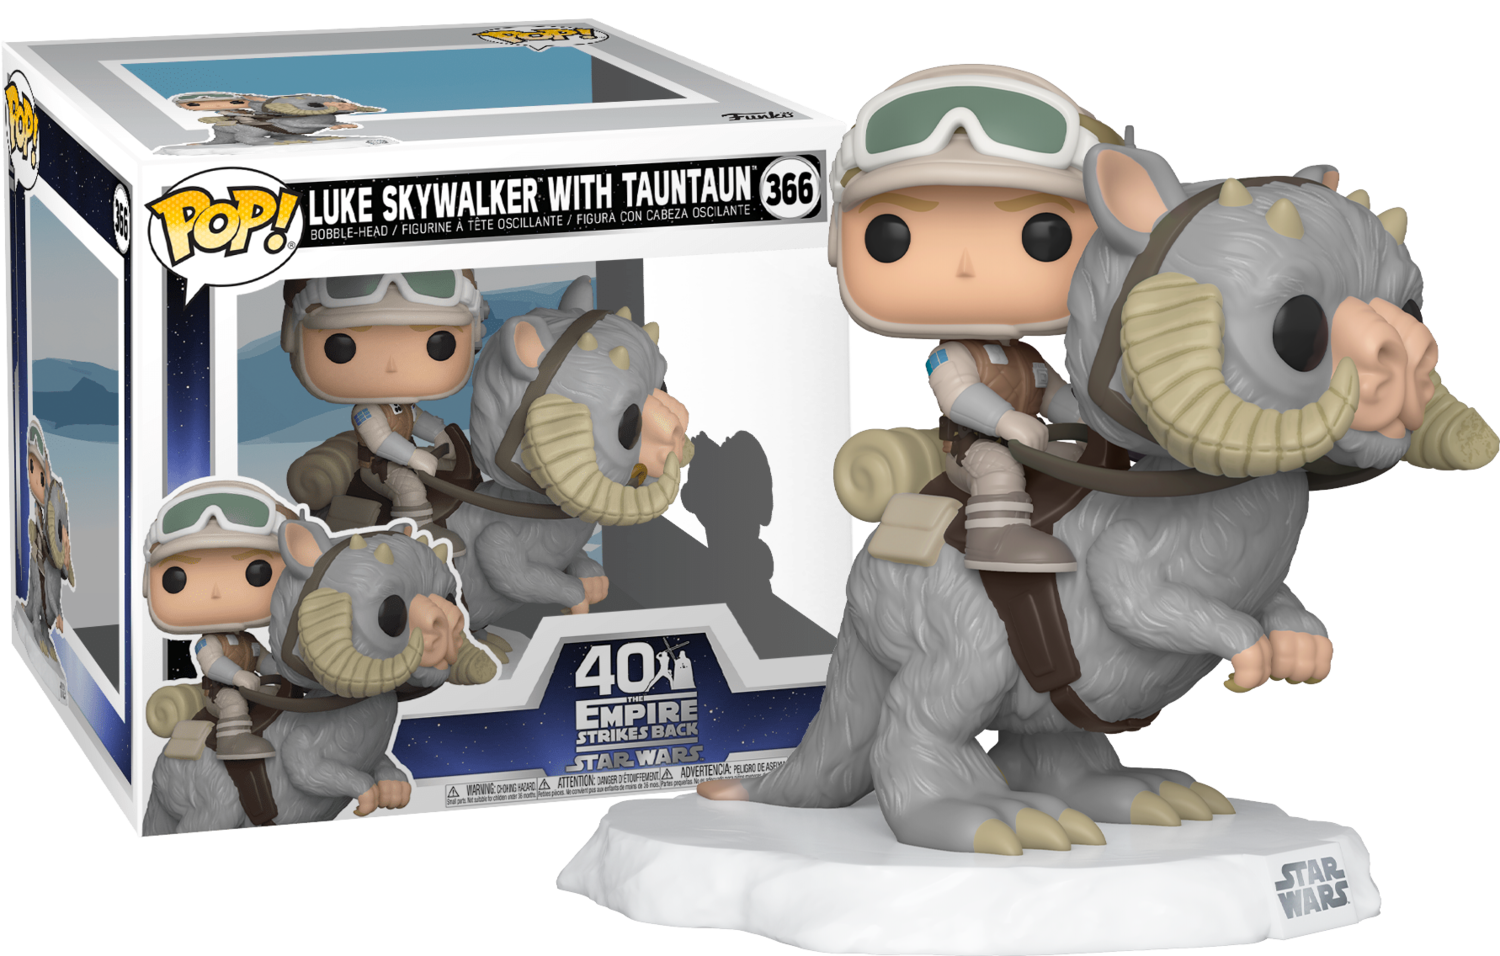 STAR WARS EPISODE V: THE EMPIRE STRIKES BACK - LUKE SKYWALKER ON TAUNTAUN DELUXE POP! VINYL FIGURE